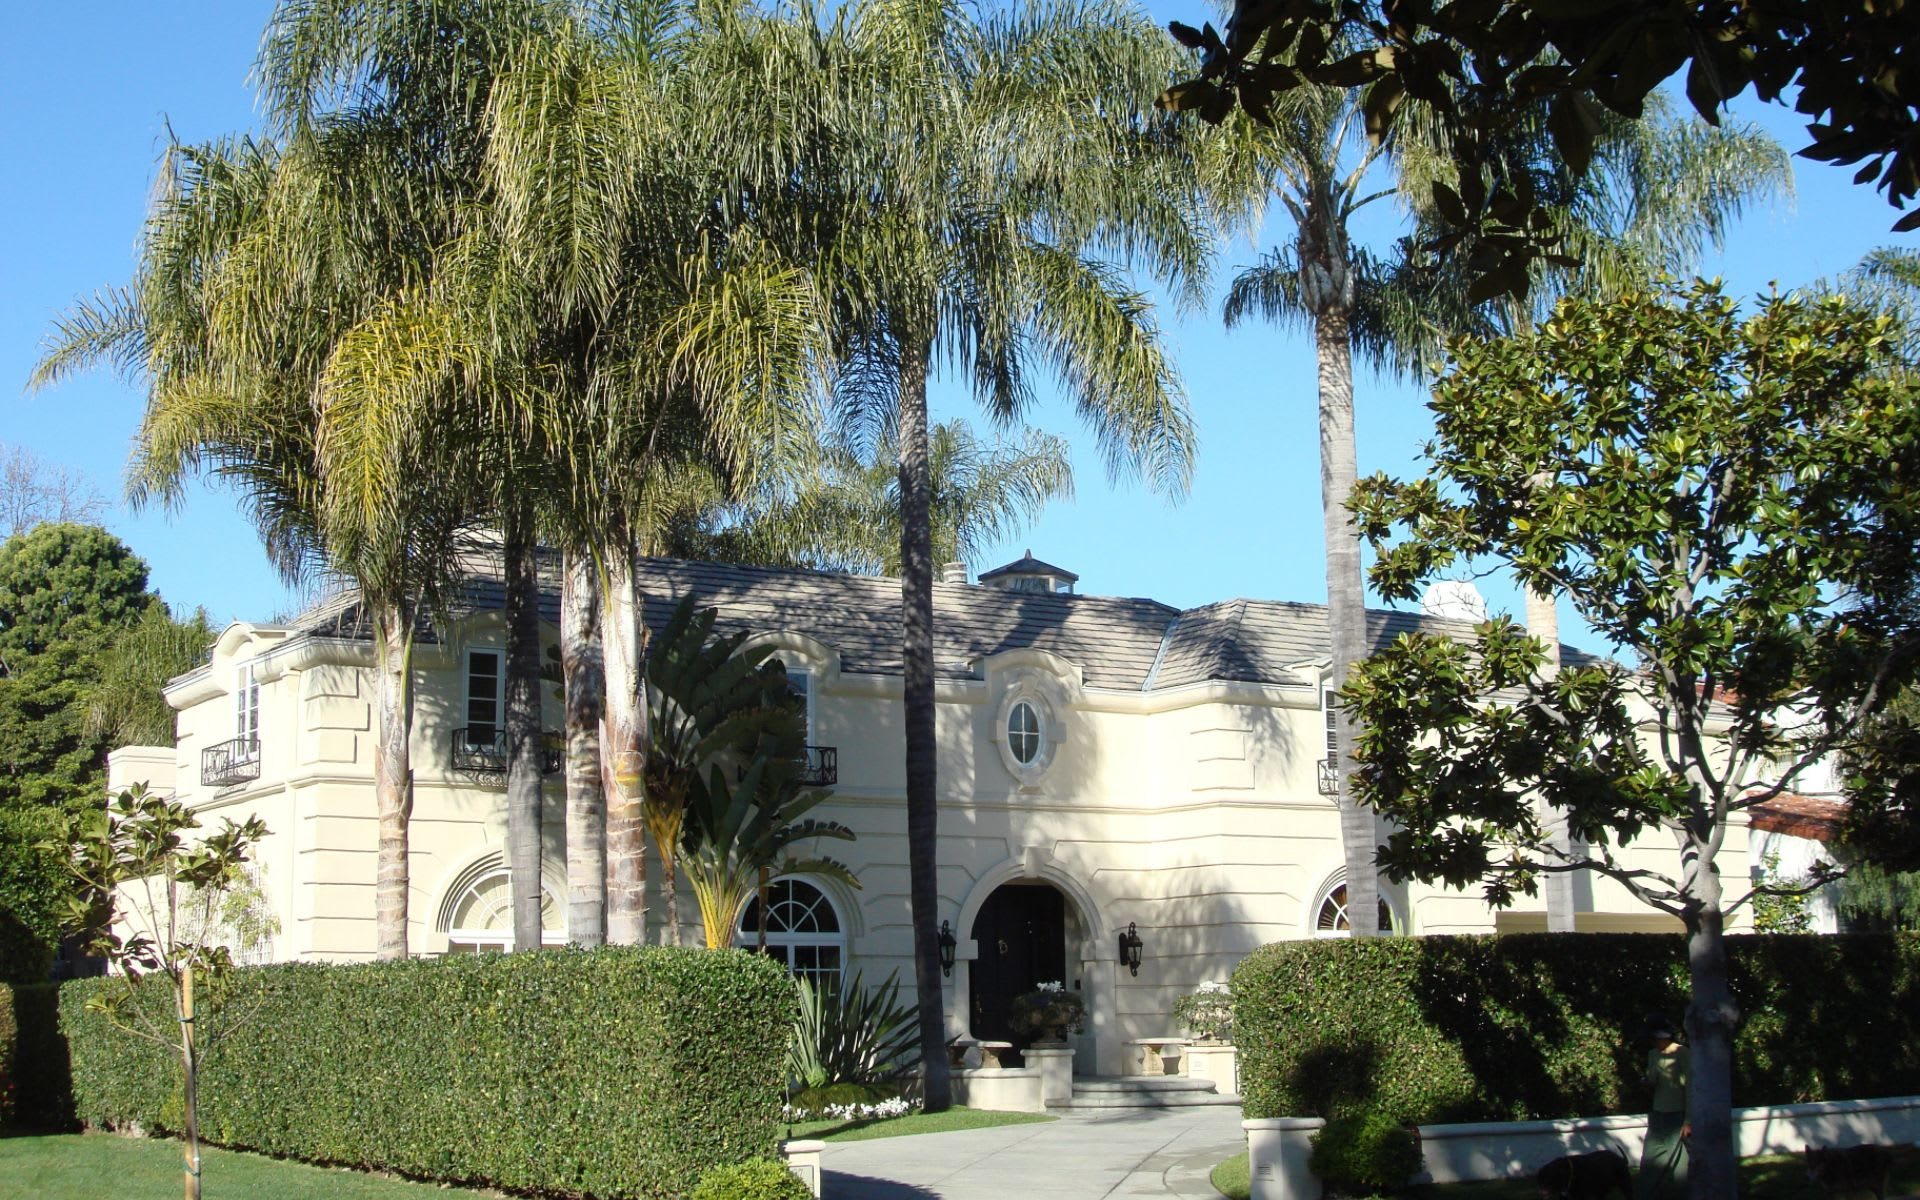 Kylie Jenner Buys Brand-New L.A. Mansion